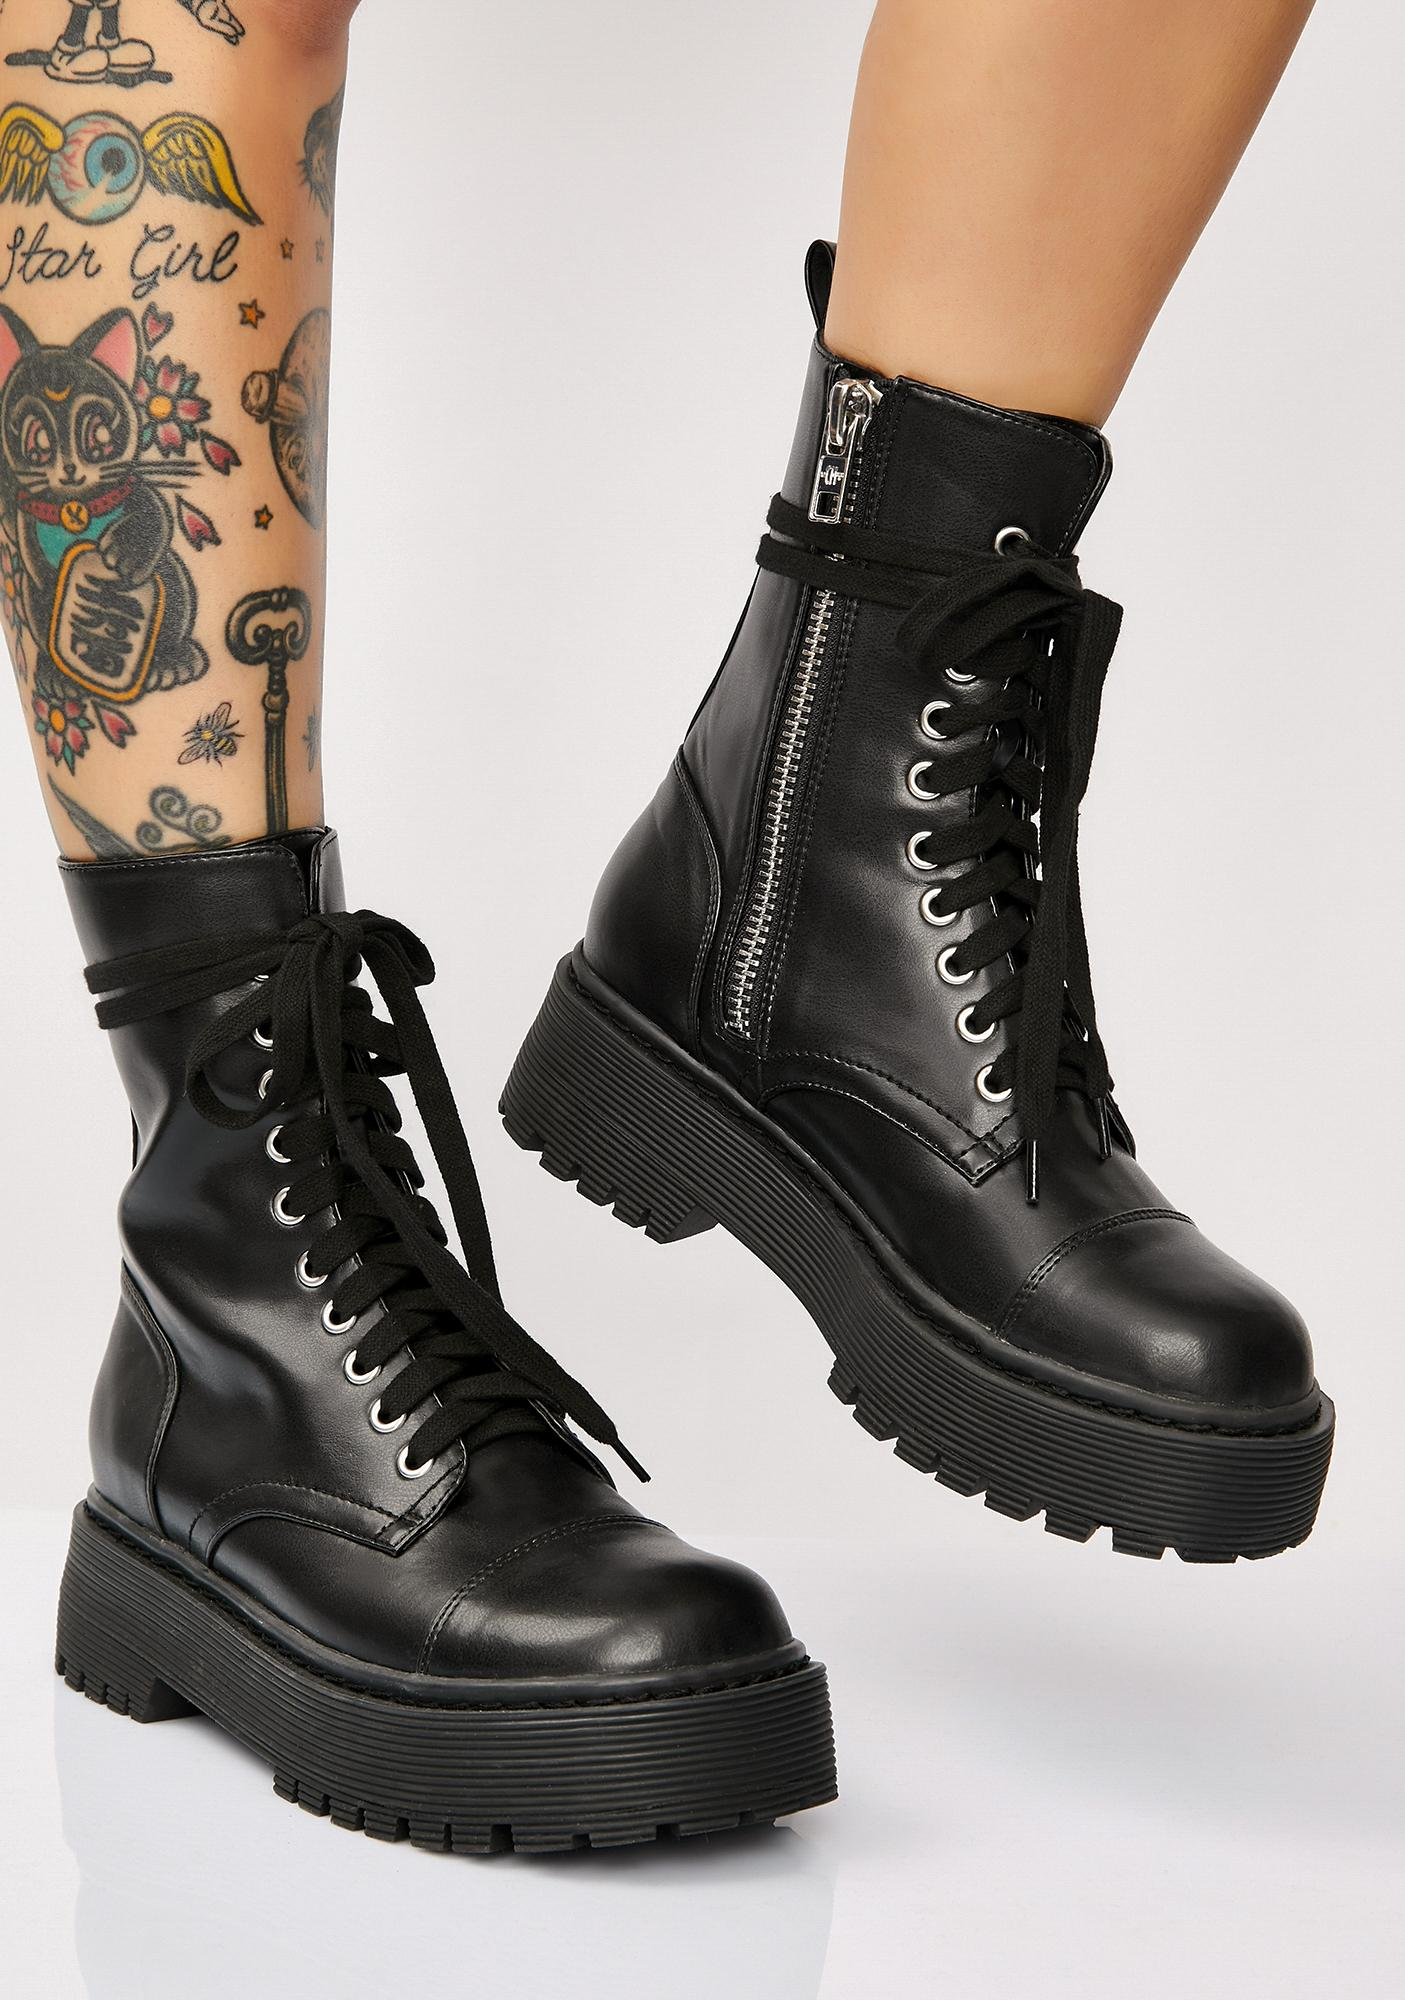 7b4001ef70afe5 Current Mood Karma Police Combat Boots | Dolls Kill